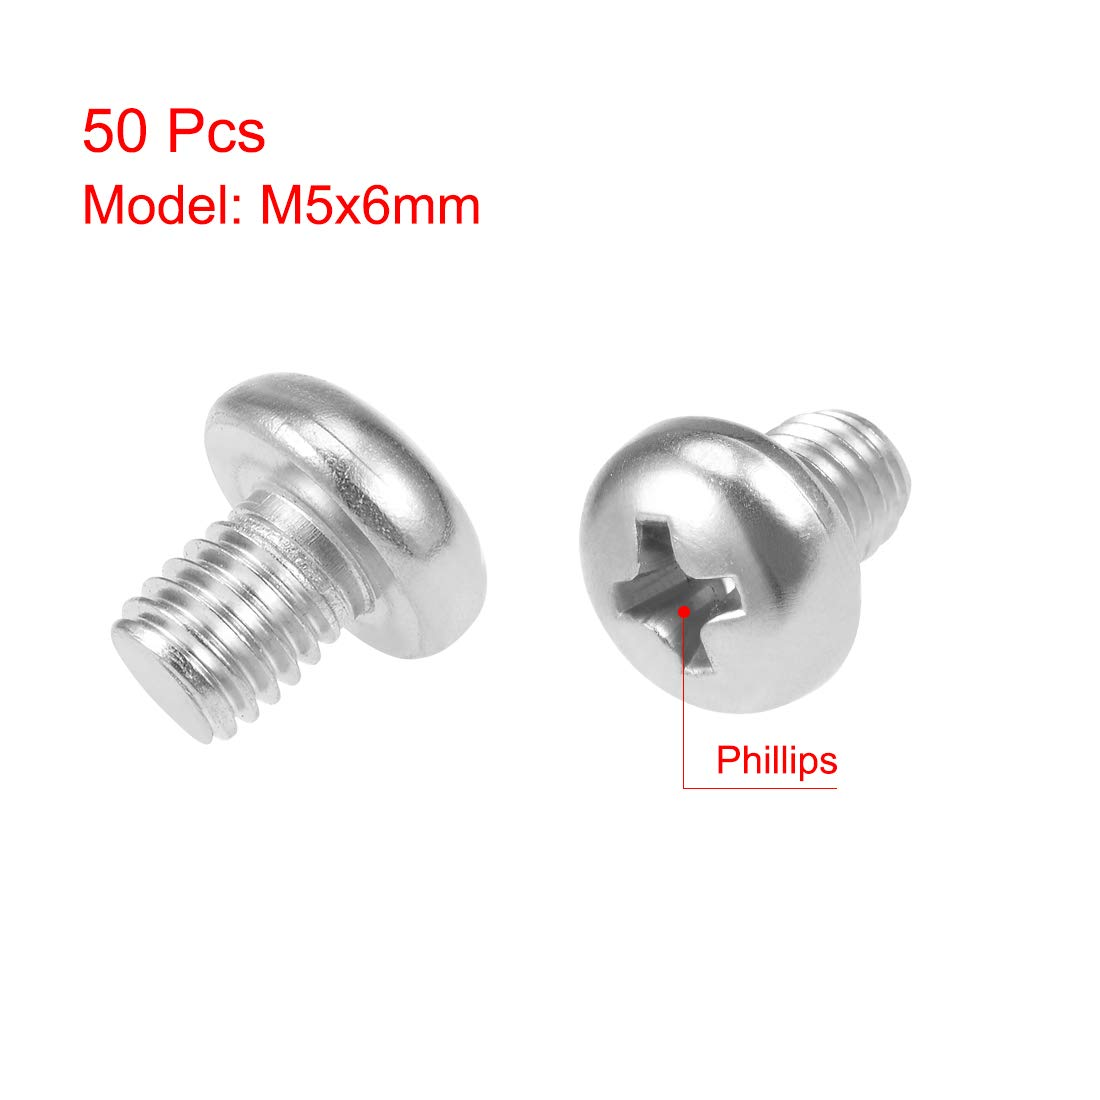 uxcell M5x12mm Machine Screws Pan Phillips Cross Head Screw 304 Stainless Steel Fasteners Bolts 50Pcs